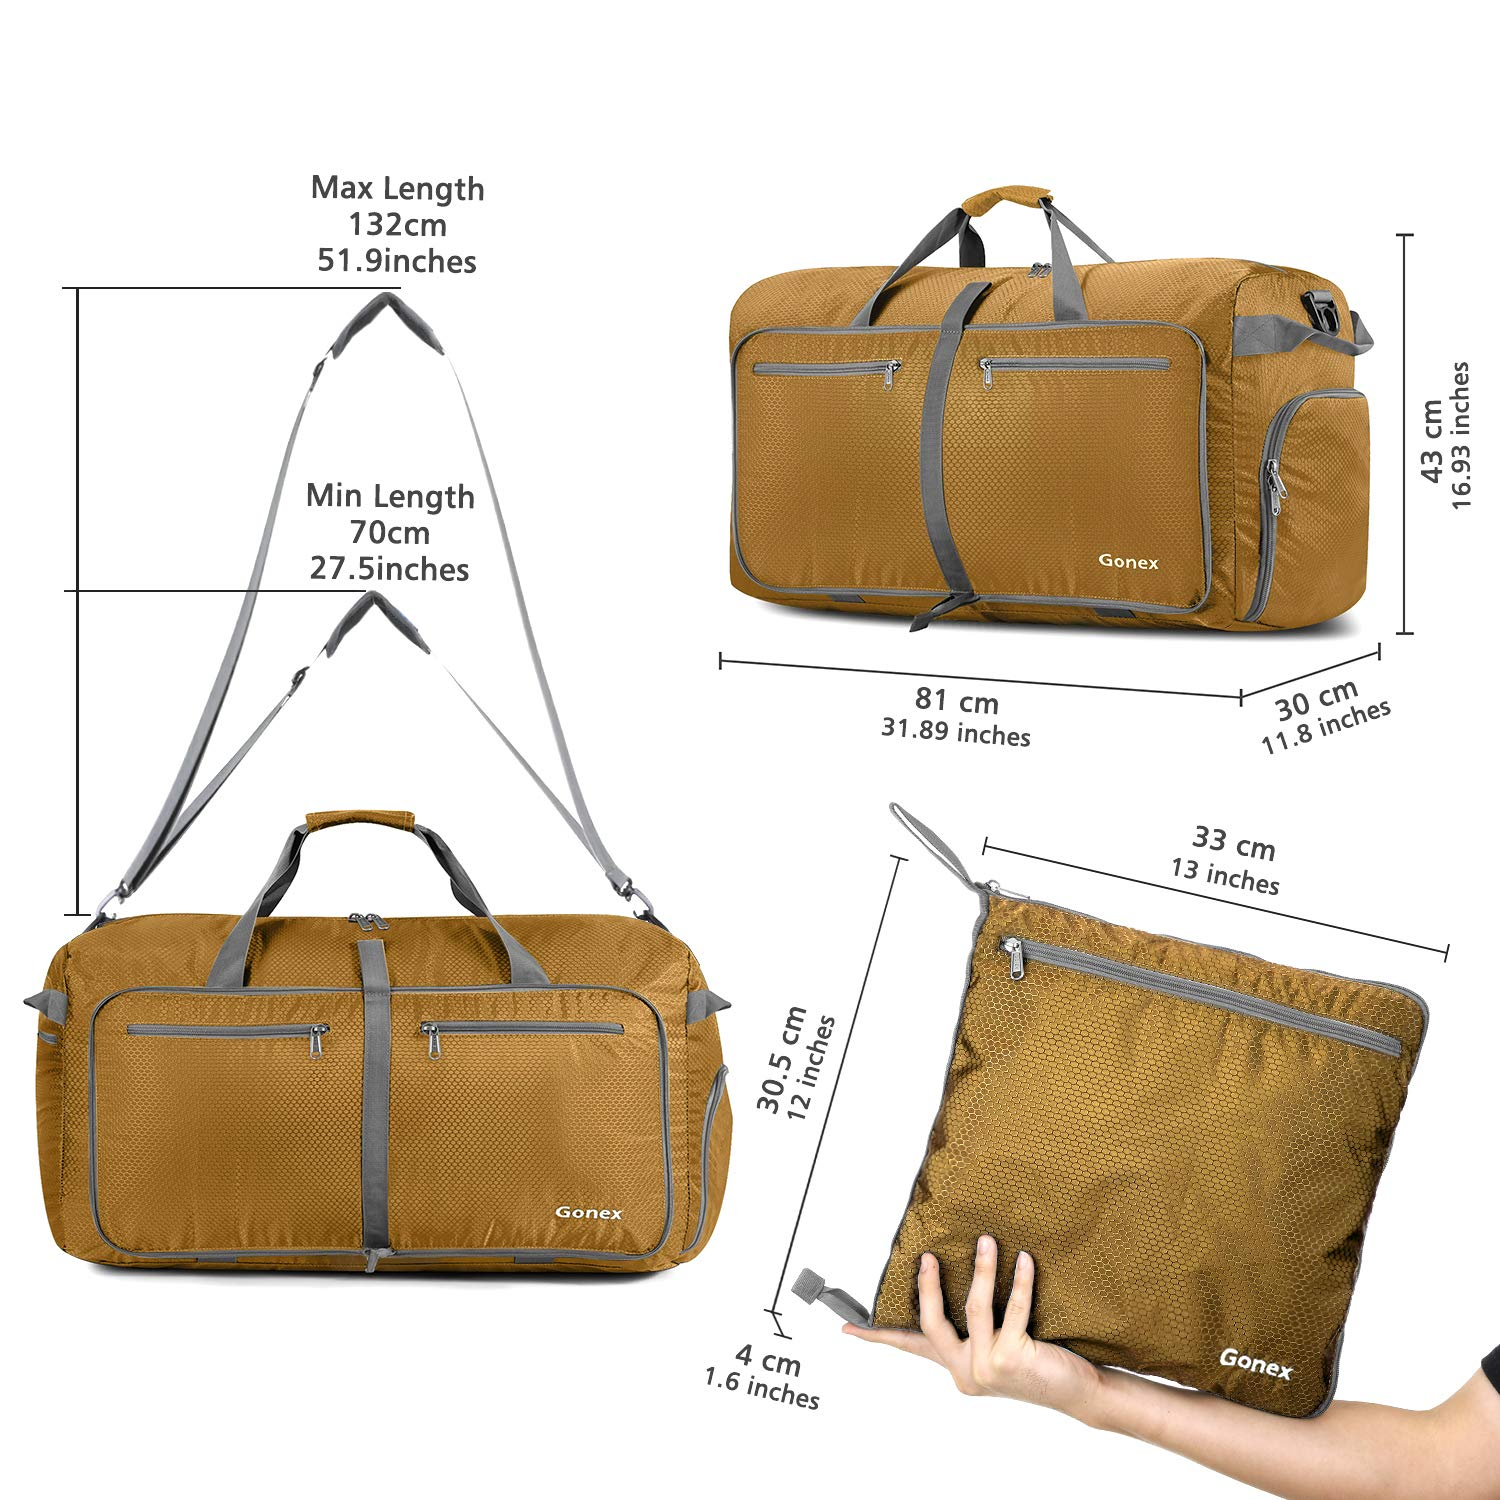 Extra Large Luggage Duffel 12 Color Choices Gonex 100L Foldable Travel Duffle Bag